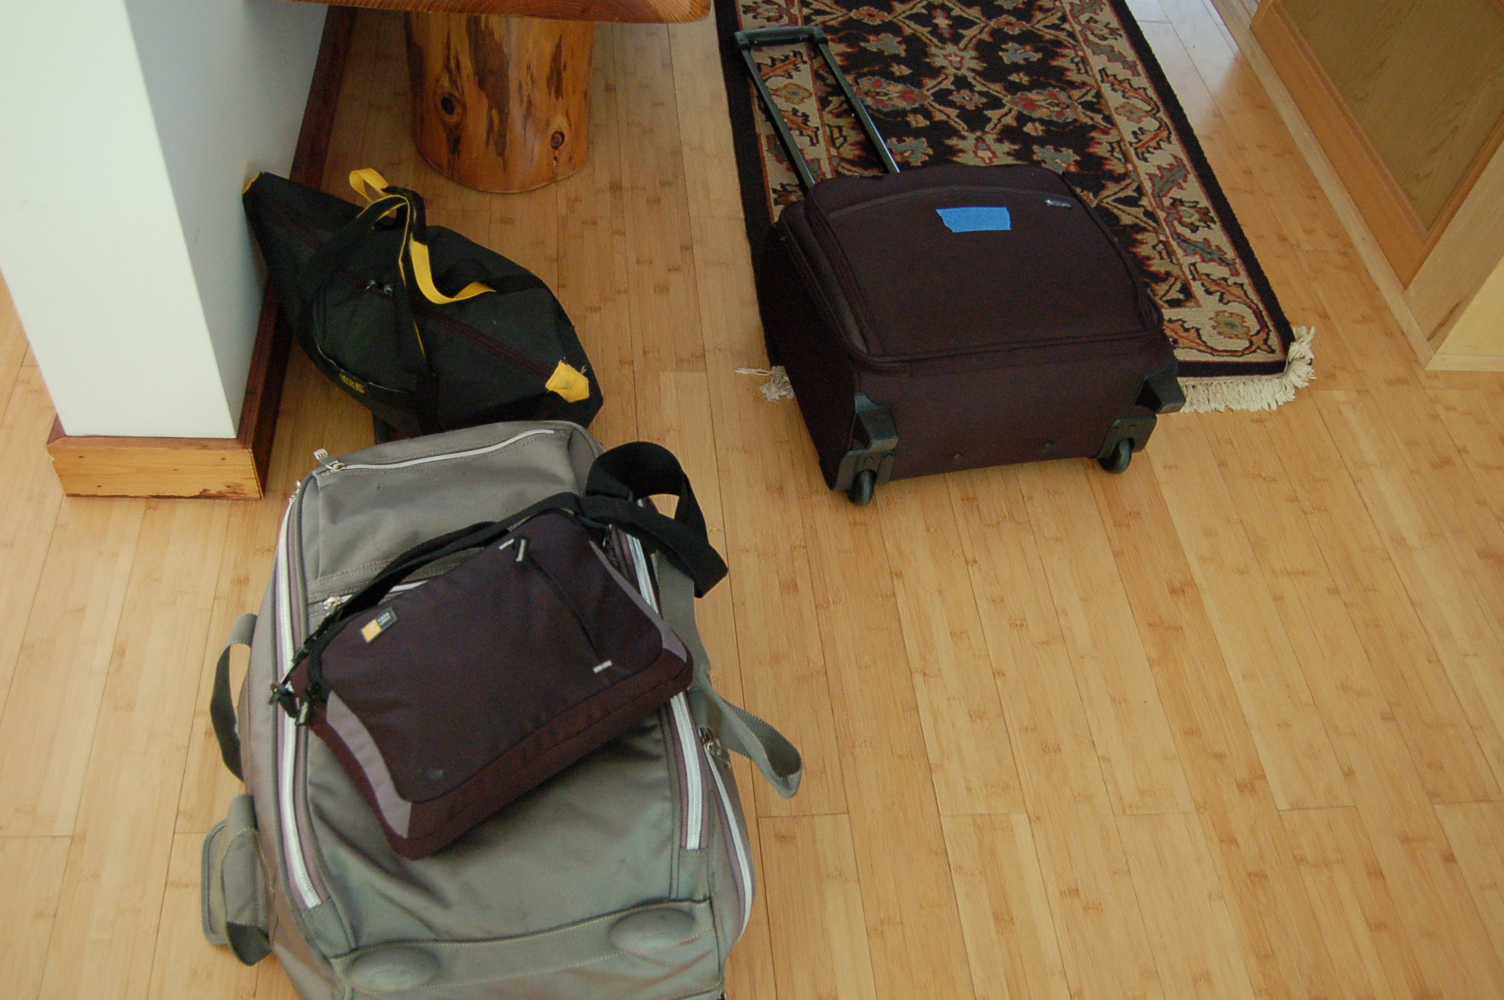 Packing Lightly ― Travel in Fiction and in Life